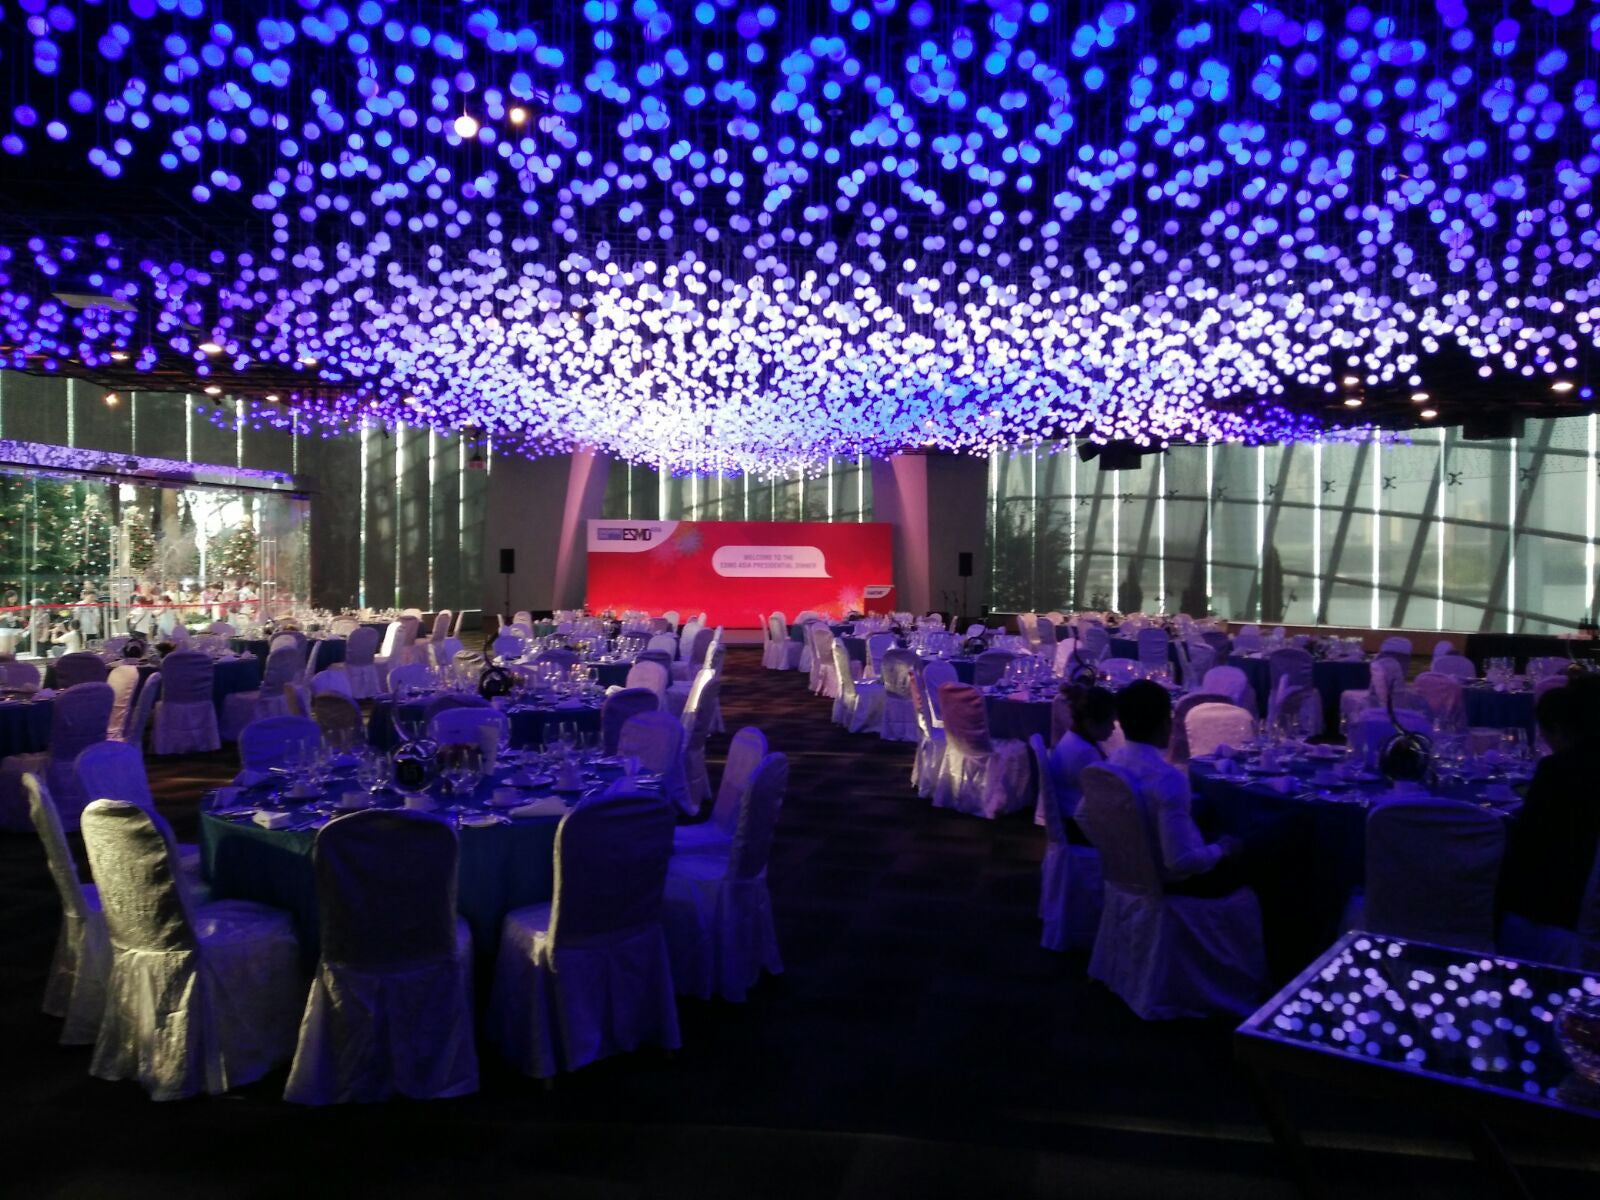 esmo gala dinner event gardens by the bay flower field hall